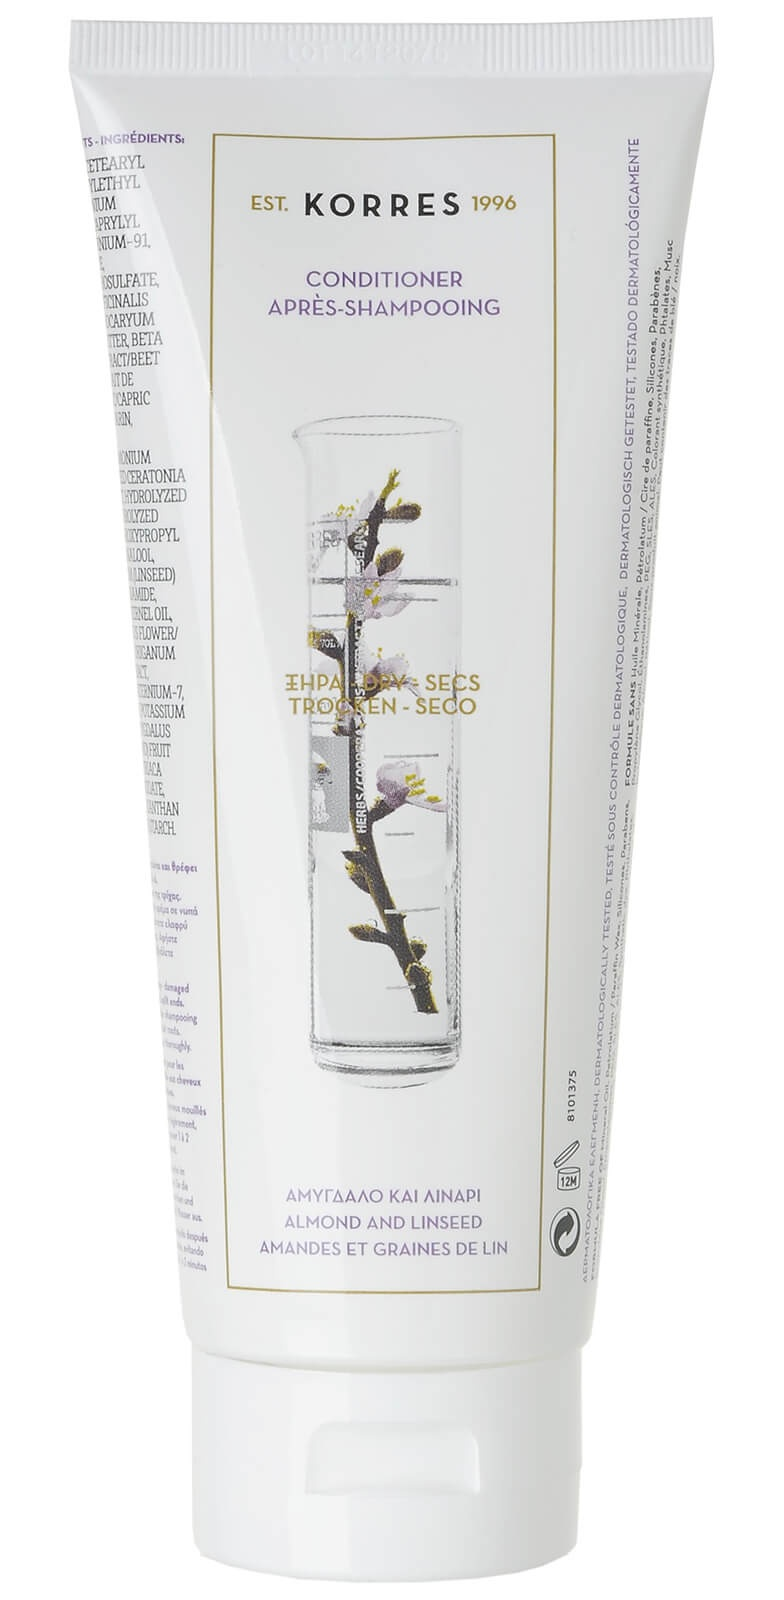 Korres Conditioner Almond & Linseed For Dry/Damaged Hair